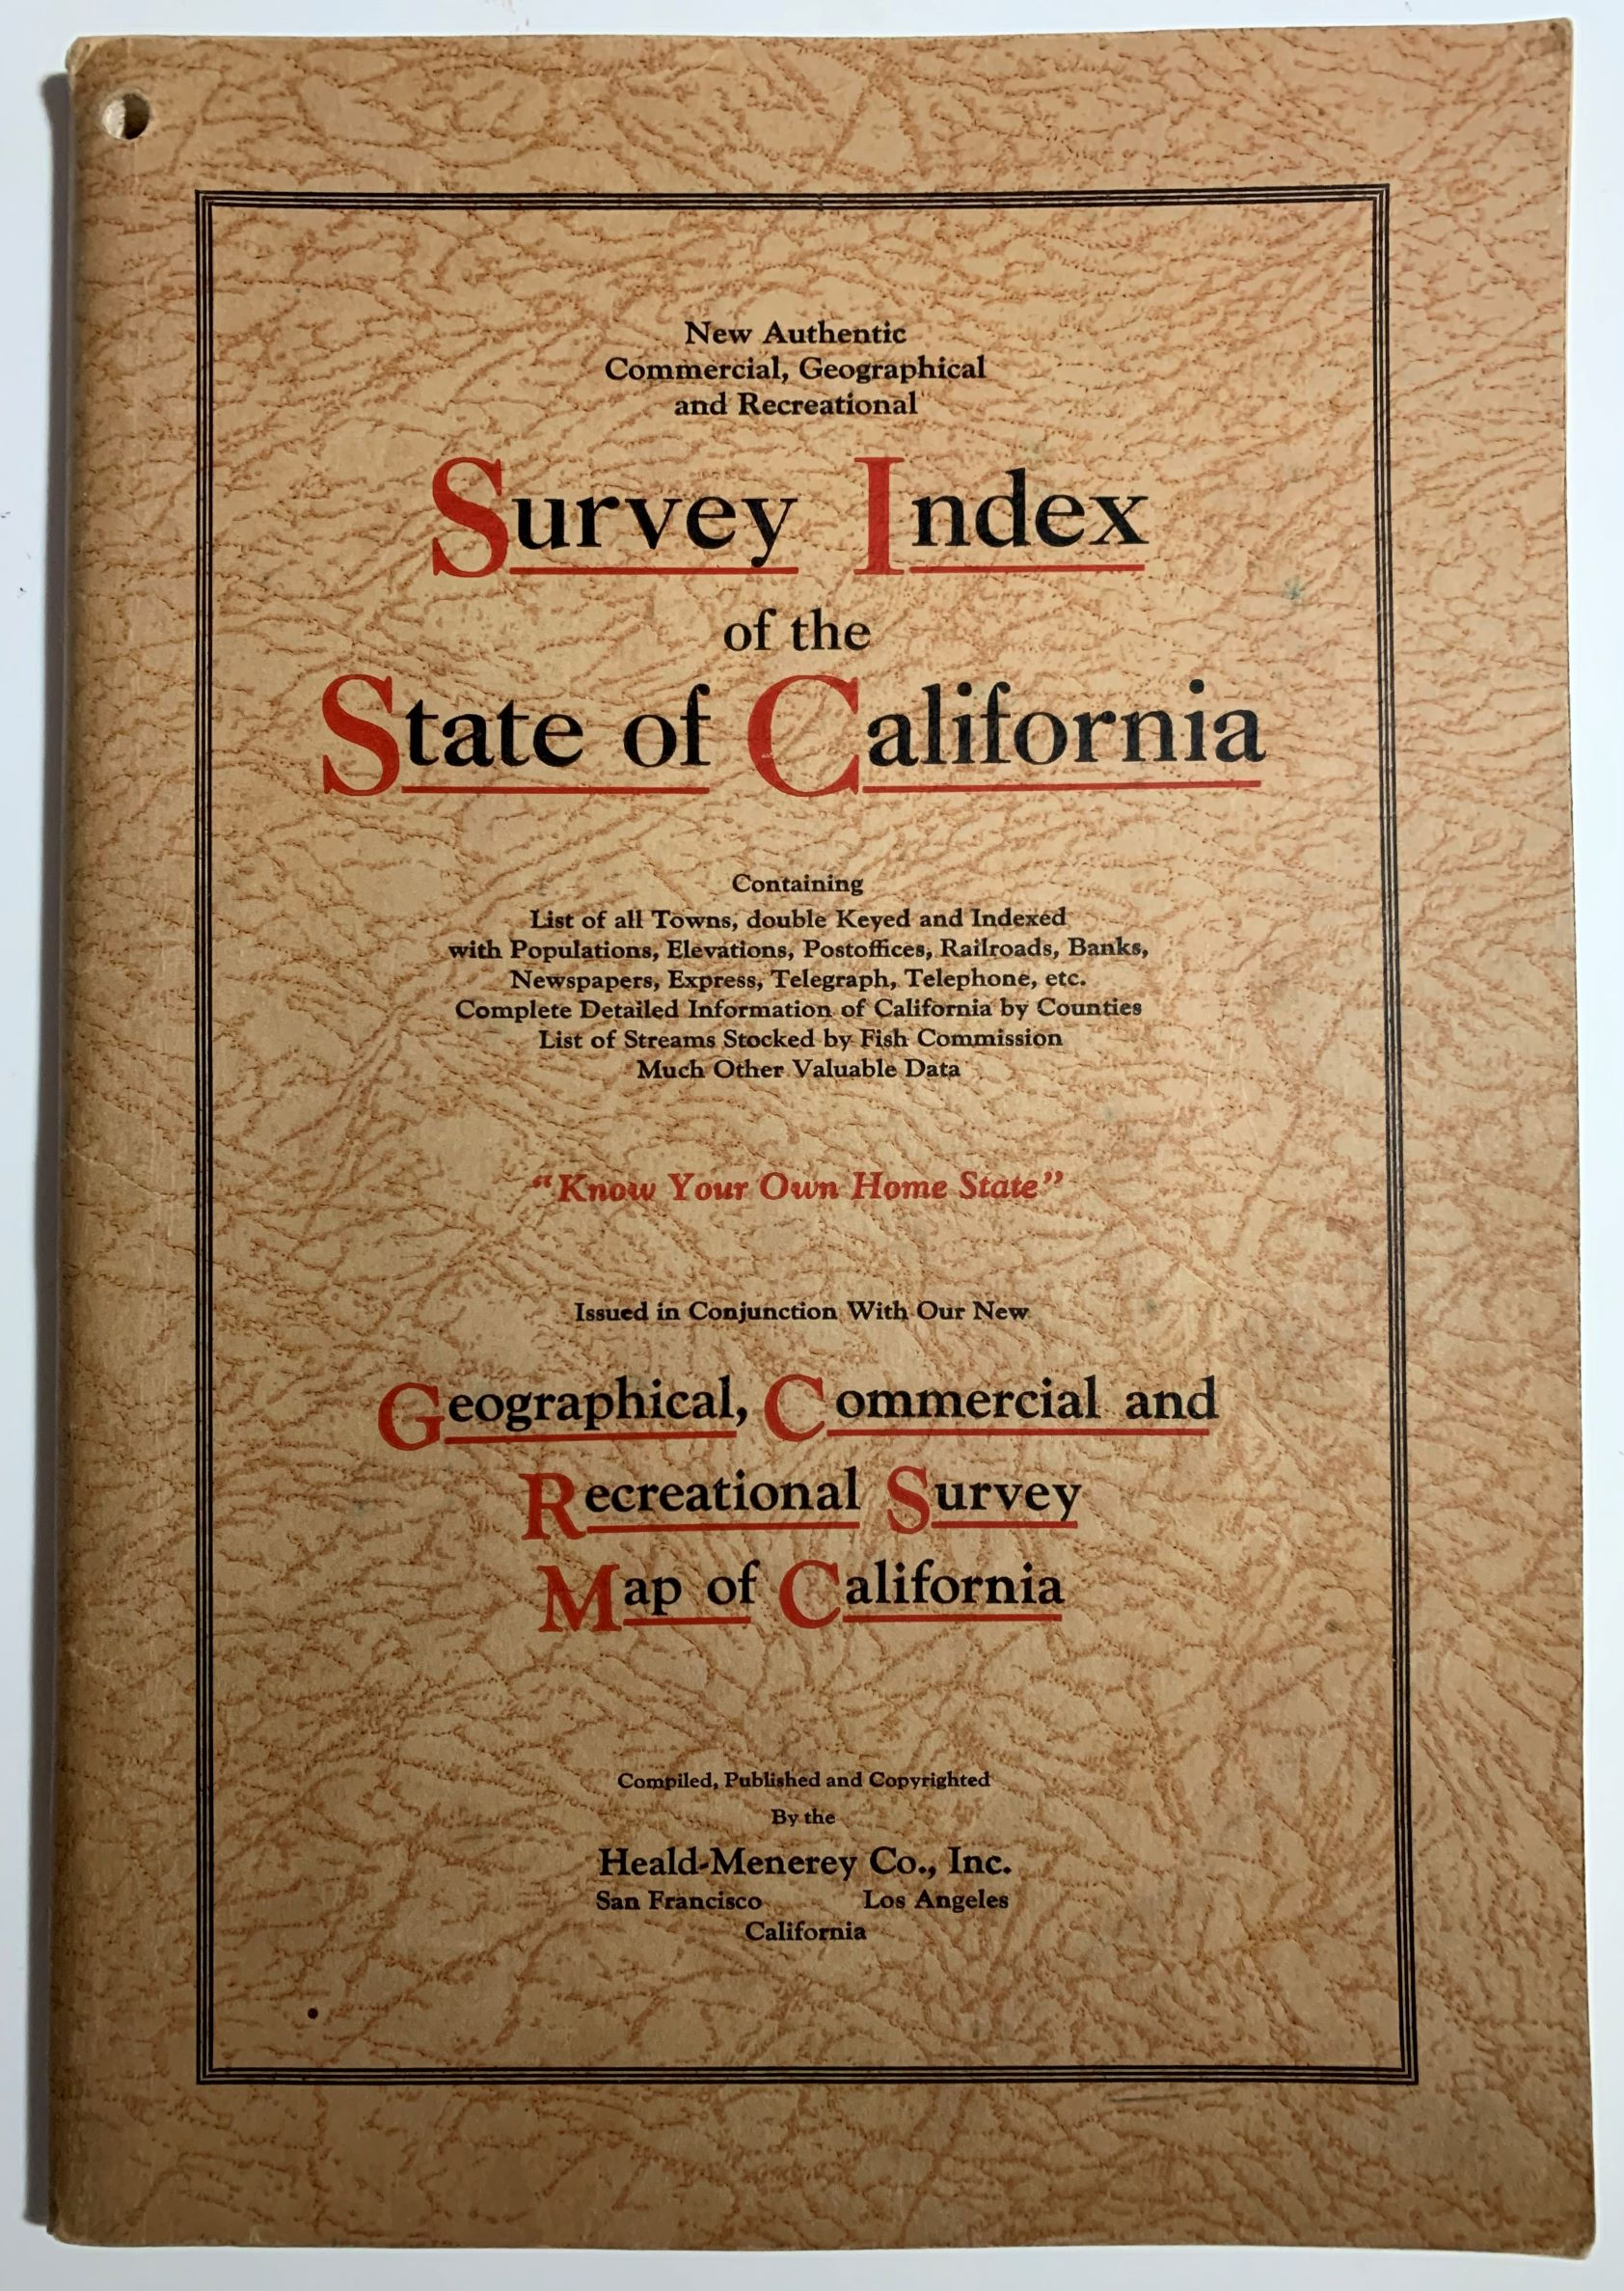 Image for New authentic commercial, geographical and recreational survey index of the state of California: containing list of all towns, double keyed and indexed with populations, elevations, postoffices, railroads, banks, newspapers, express, telegraph, telephone, etc. ; complete detailed information of California by counties ; list of streams stocked by Fish commission ; much other valuable data.